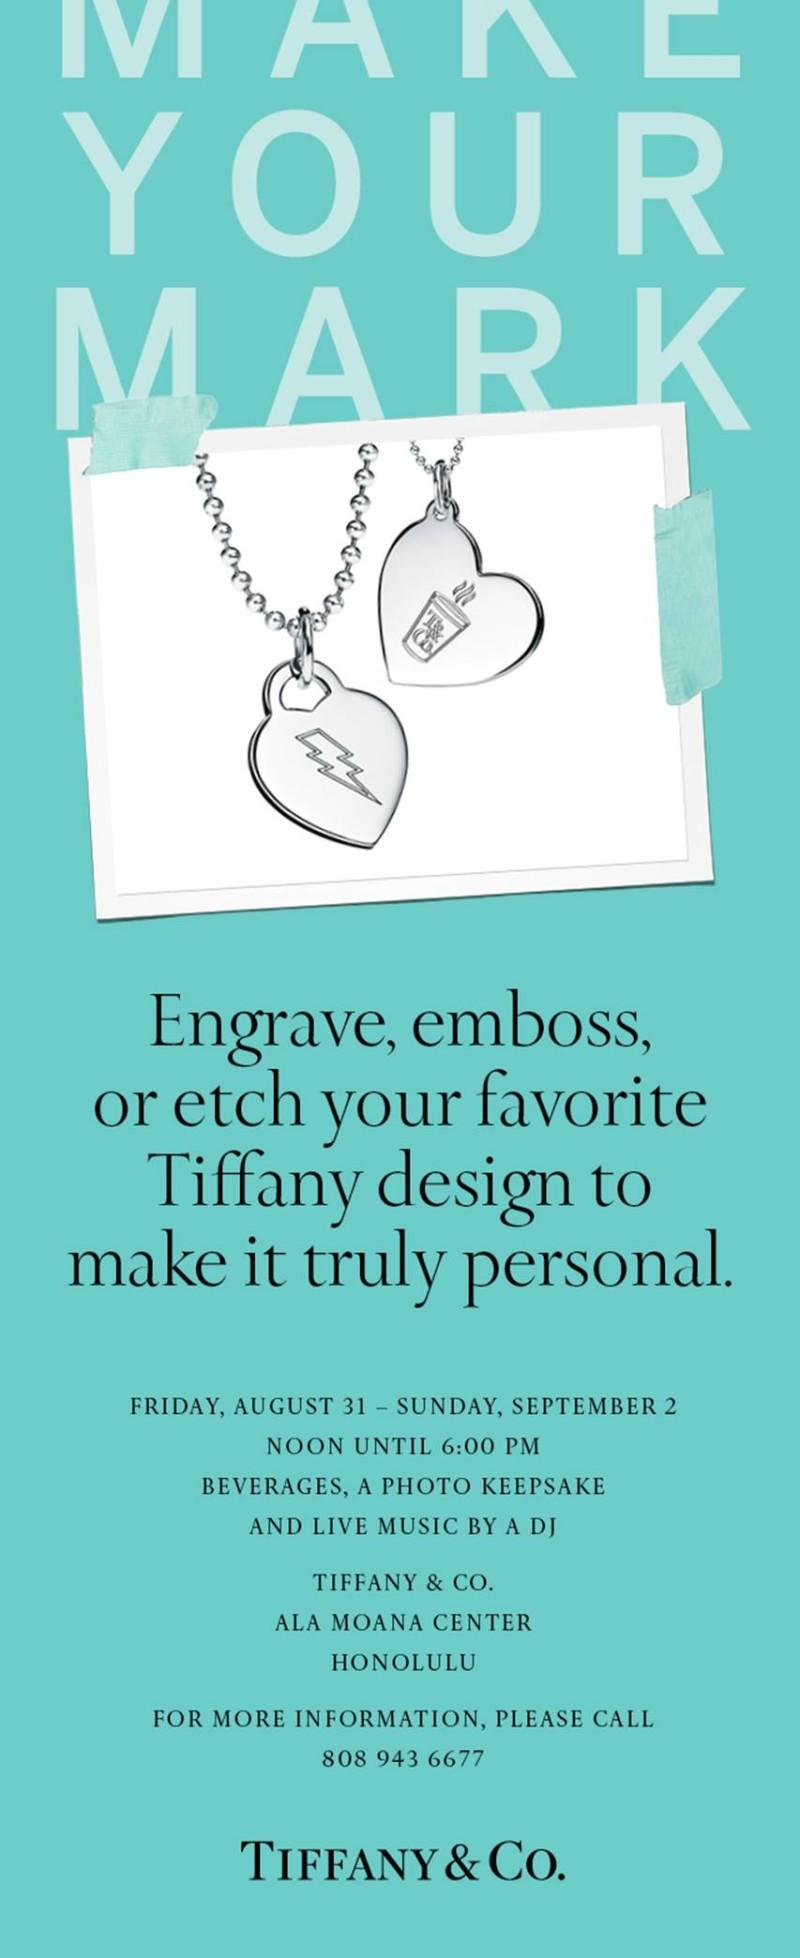 Make Your Mark from TIFFANY & Co.